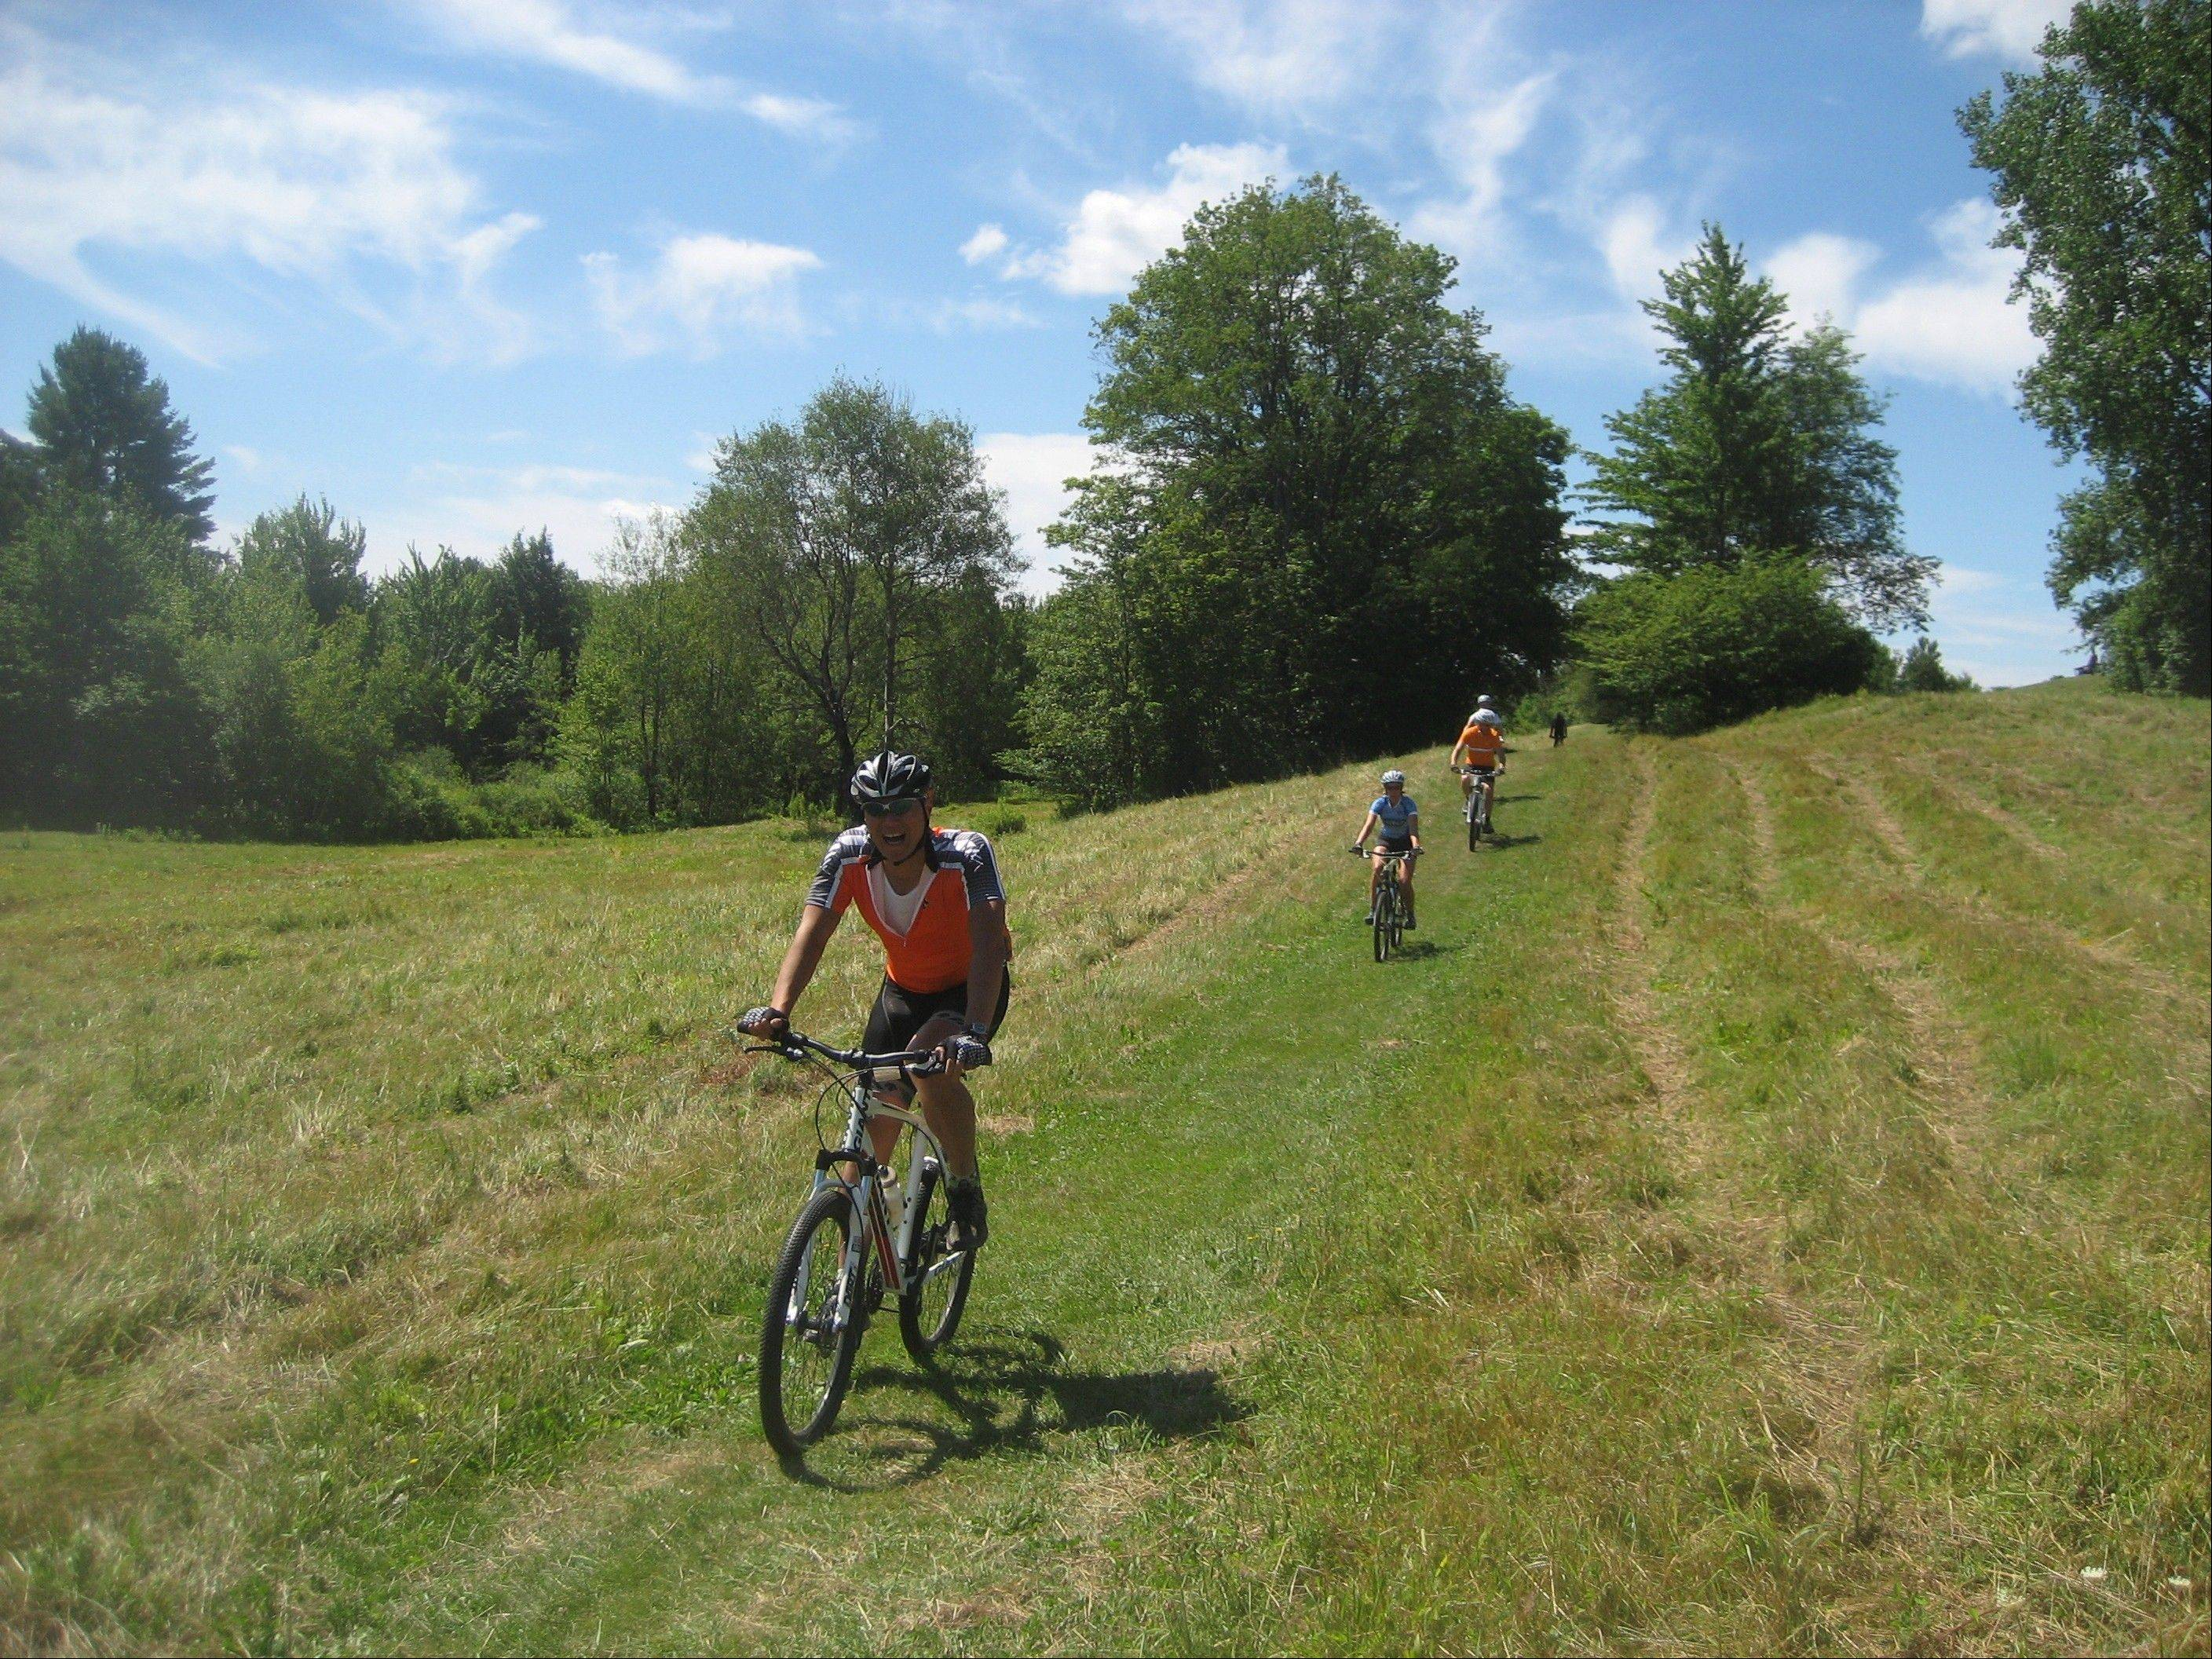 Cyclists on the Vermont Bike & Brew Tour cut through a field.